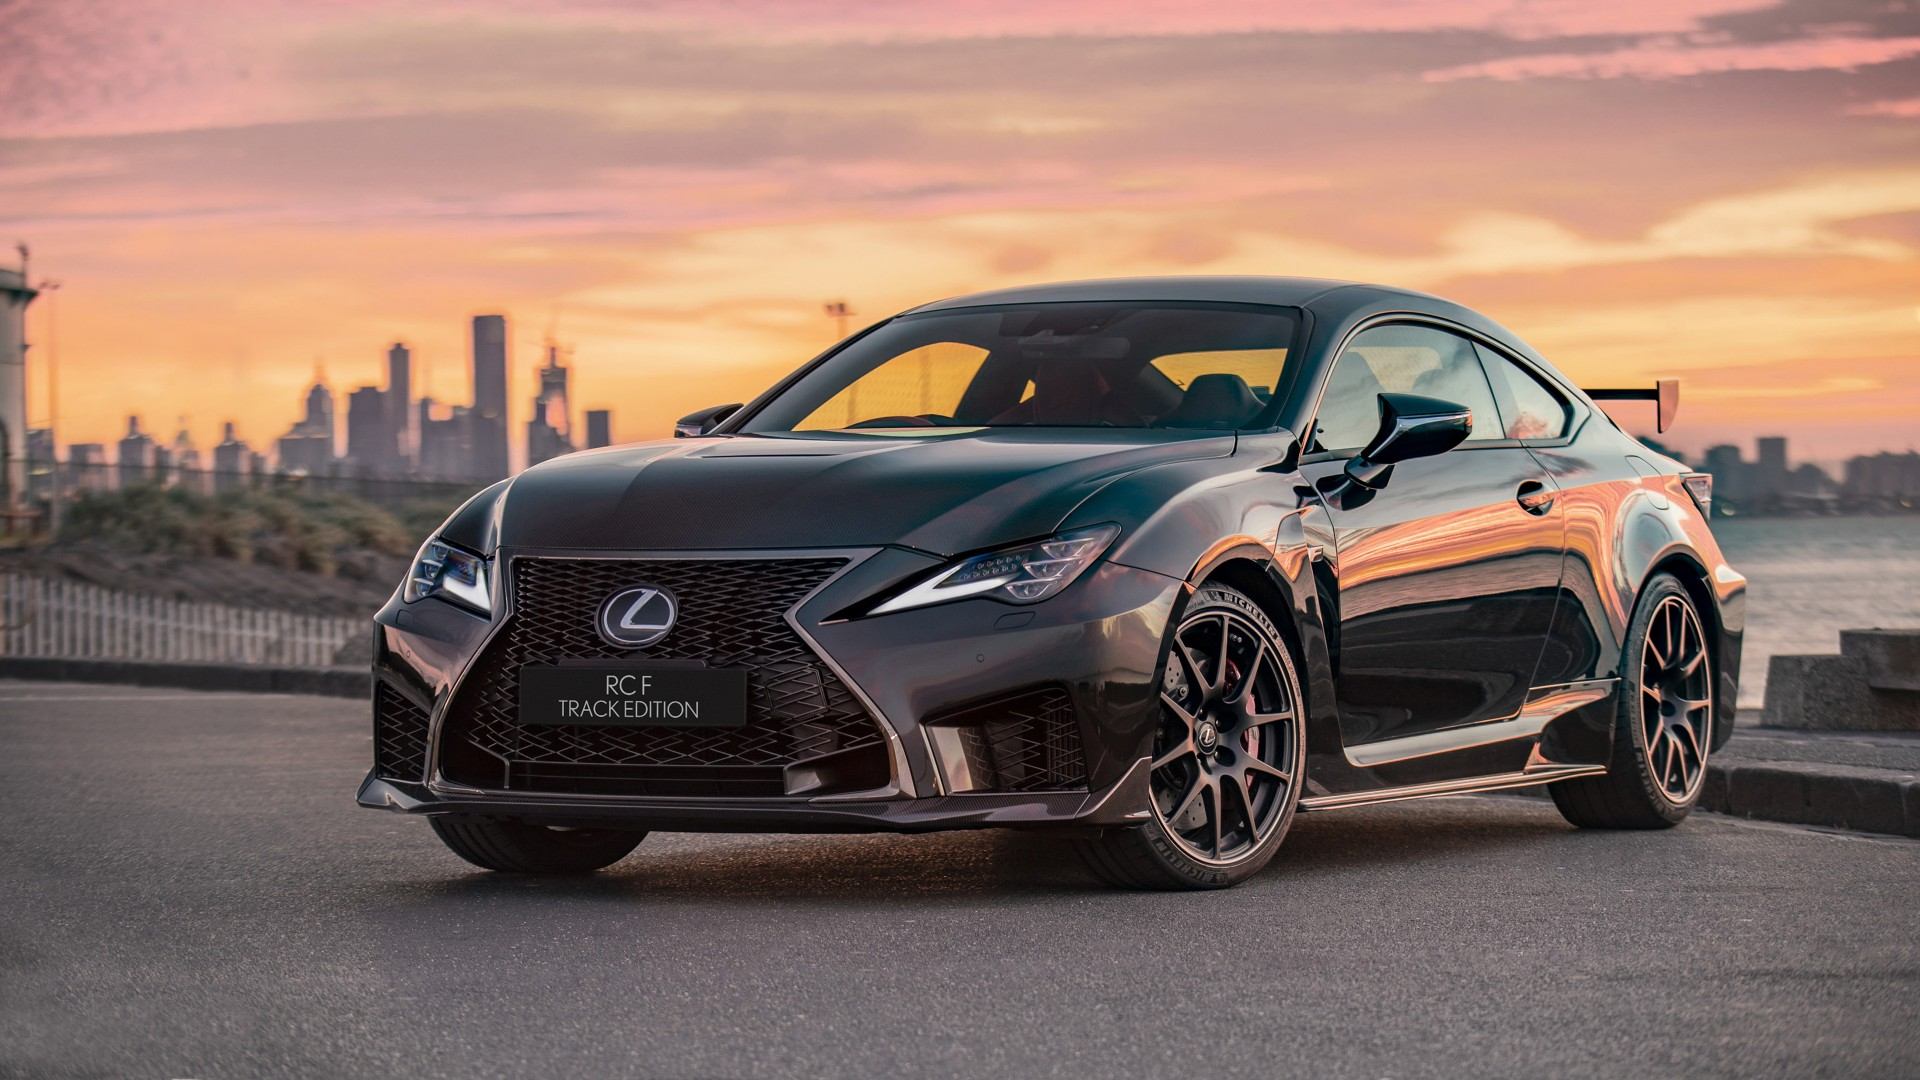 Lexus Rc F Track Edition 2019 Wallpaper Hd Car